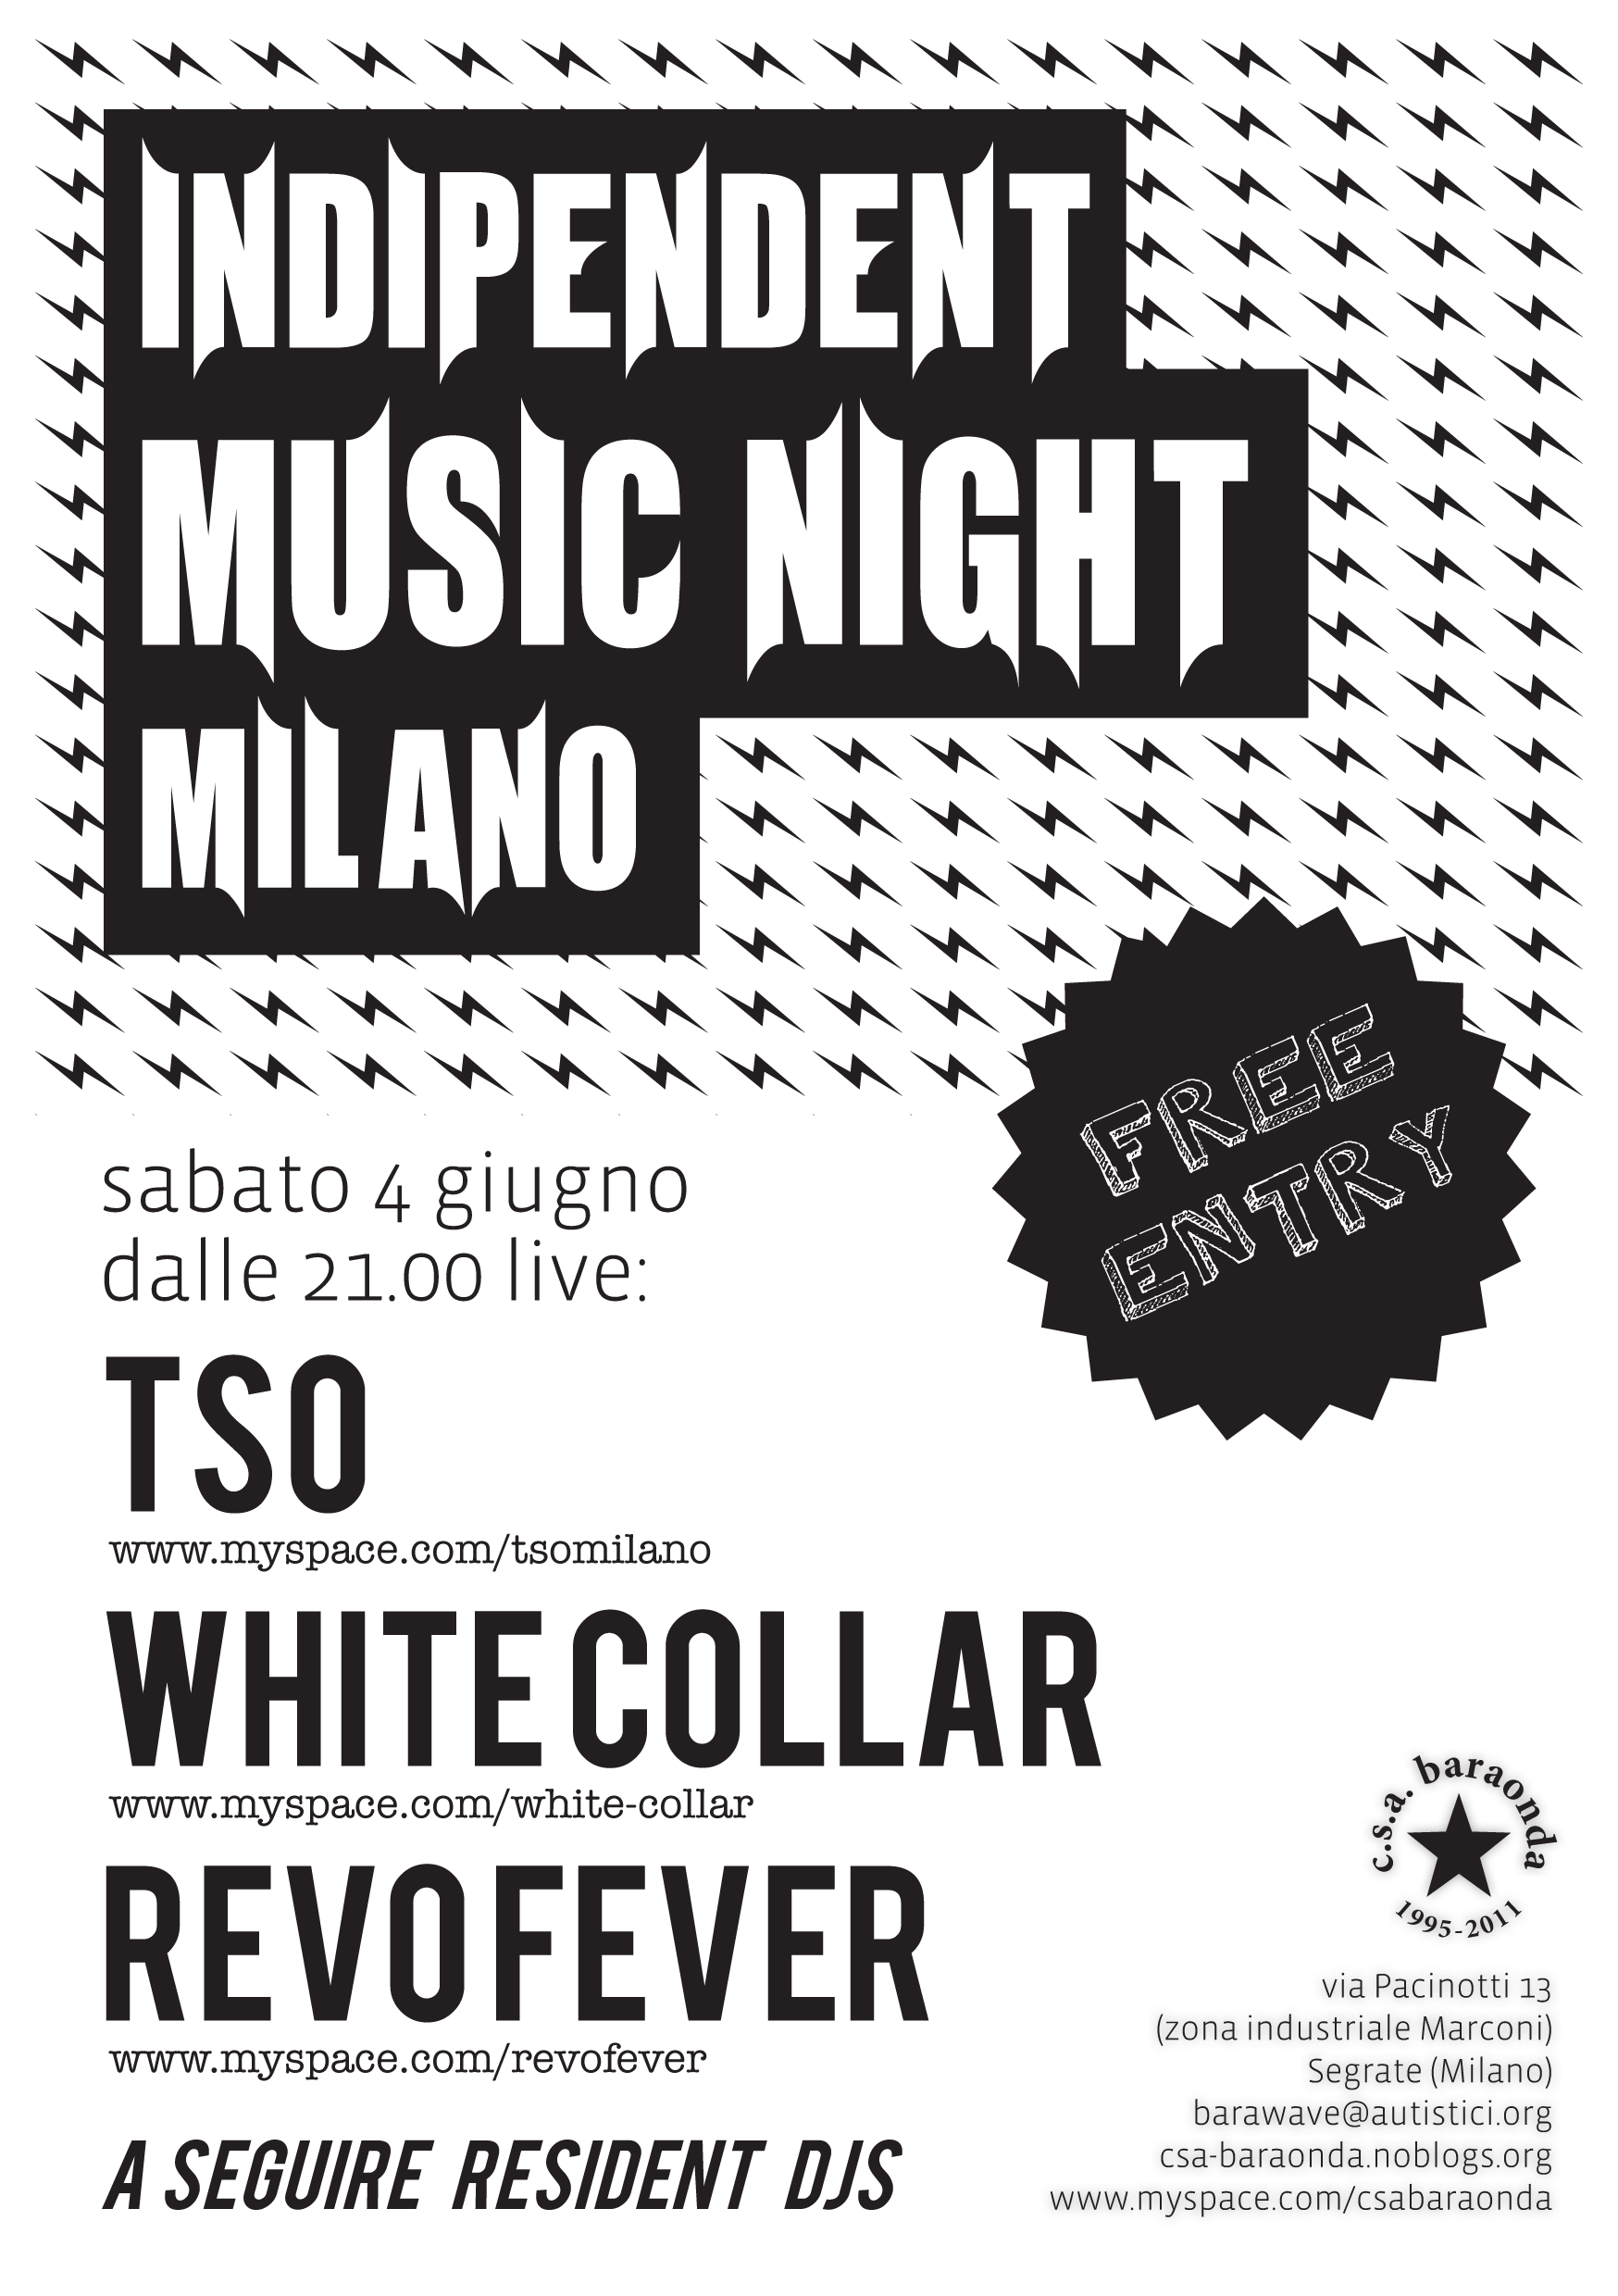 2011_06_04_independent_music_night_milano